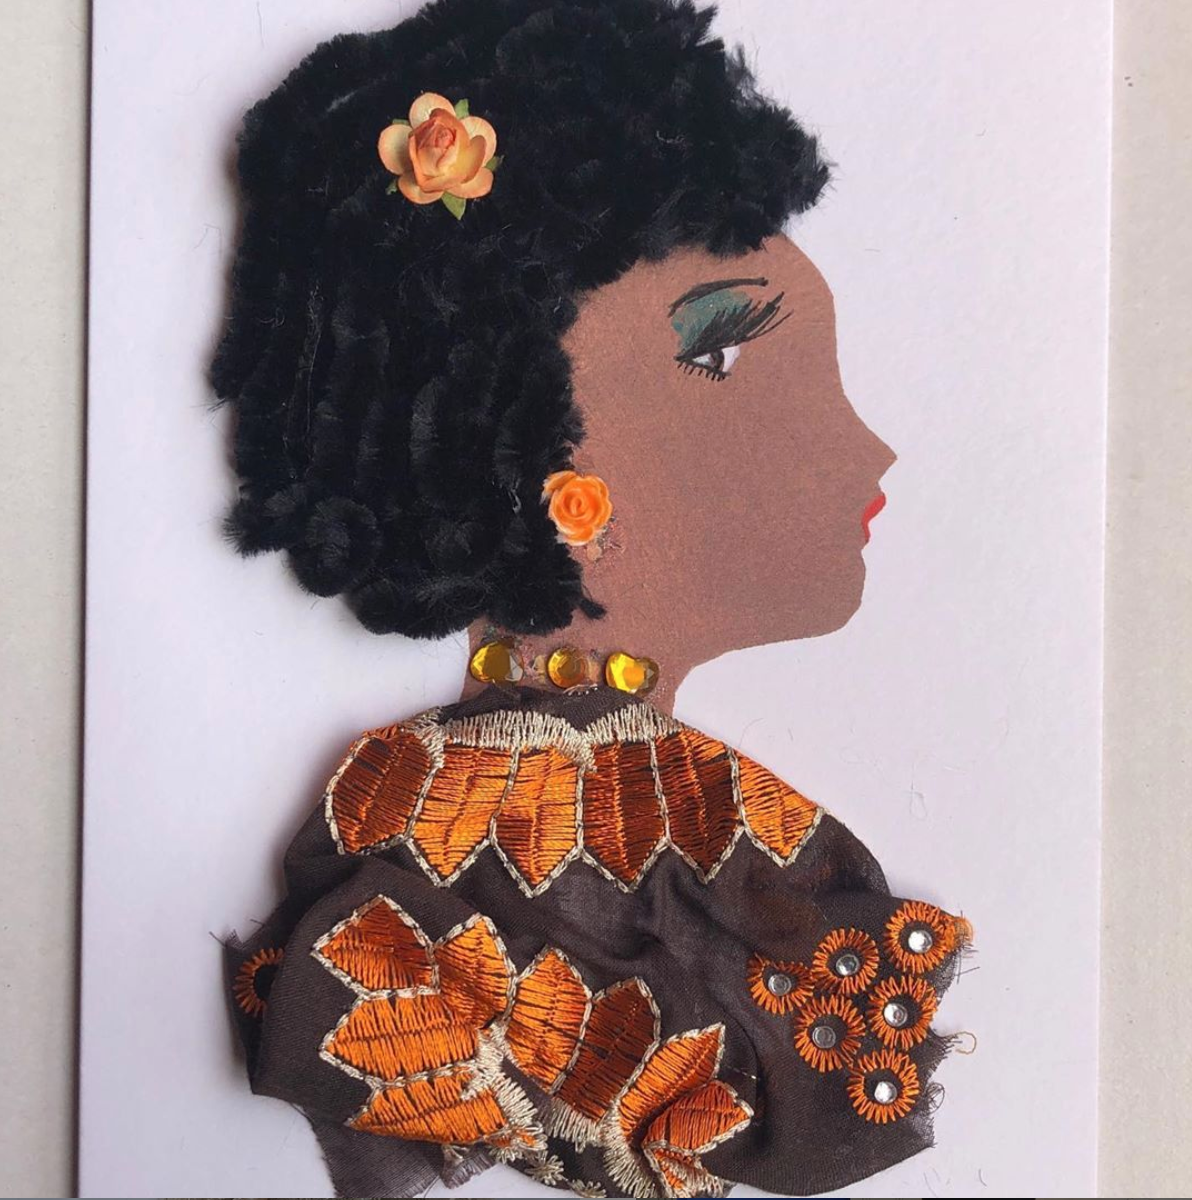 Above: Dayo creates handmade cards which feature people of 19 different skin tones.